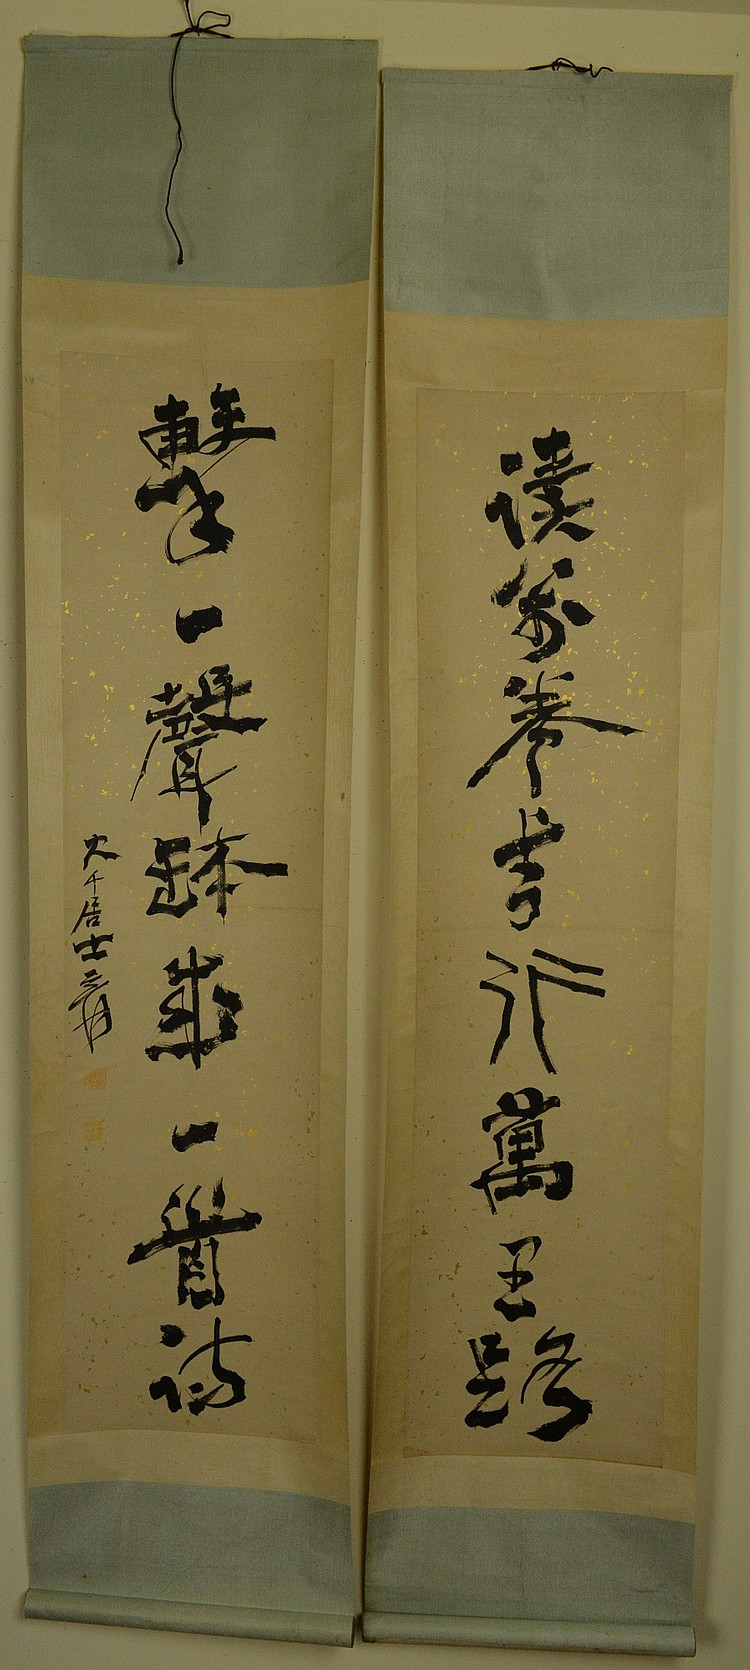 Pair of Chinese Calligraphy's on Scroll